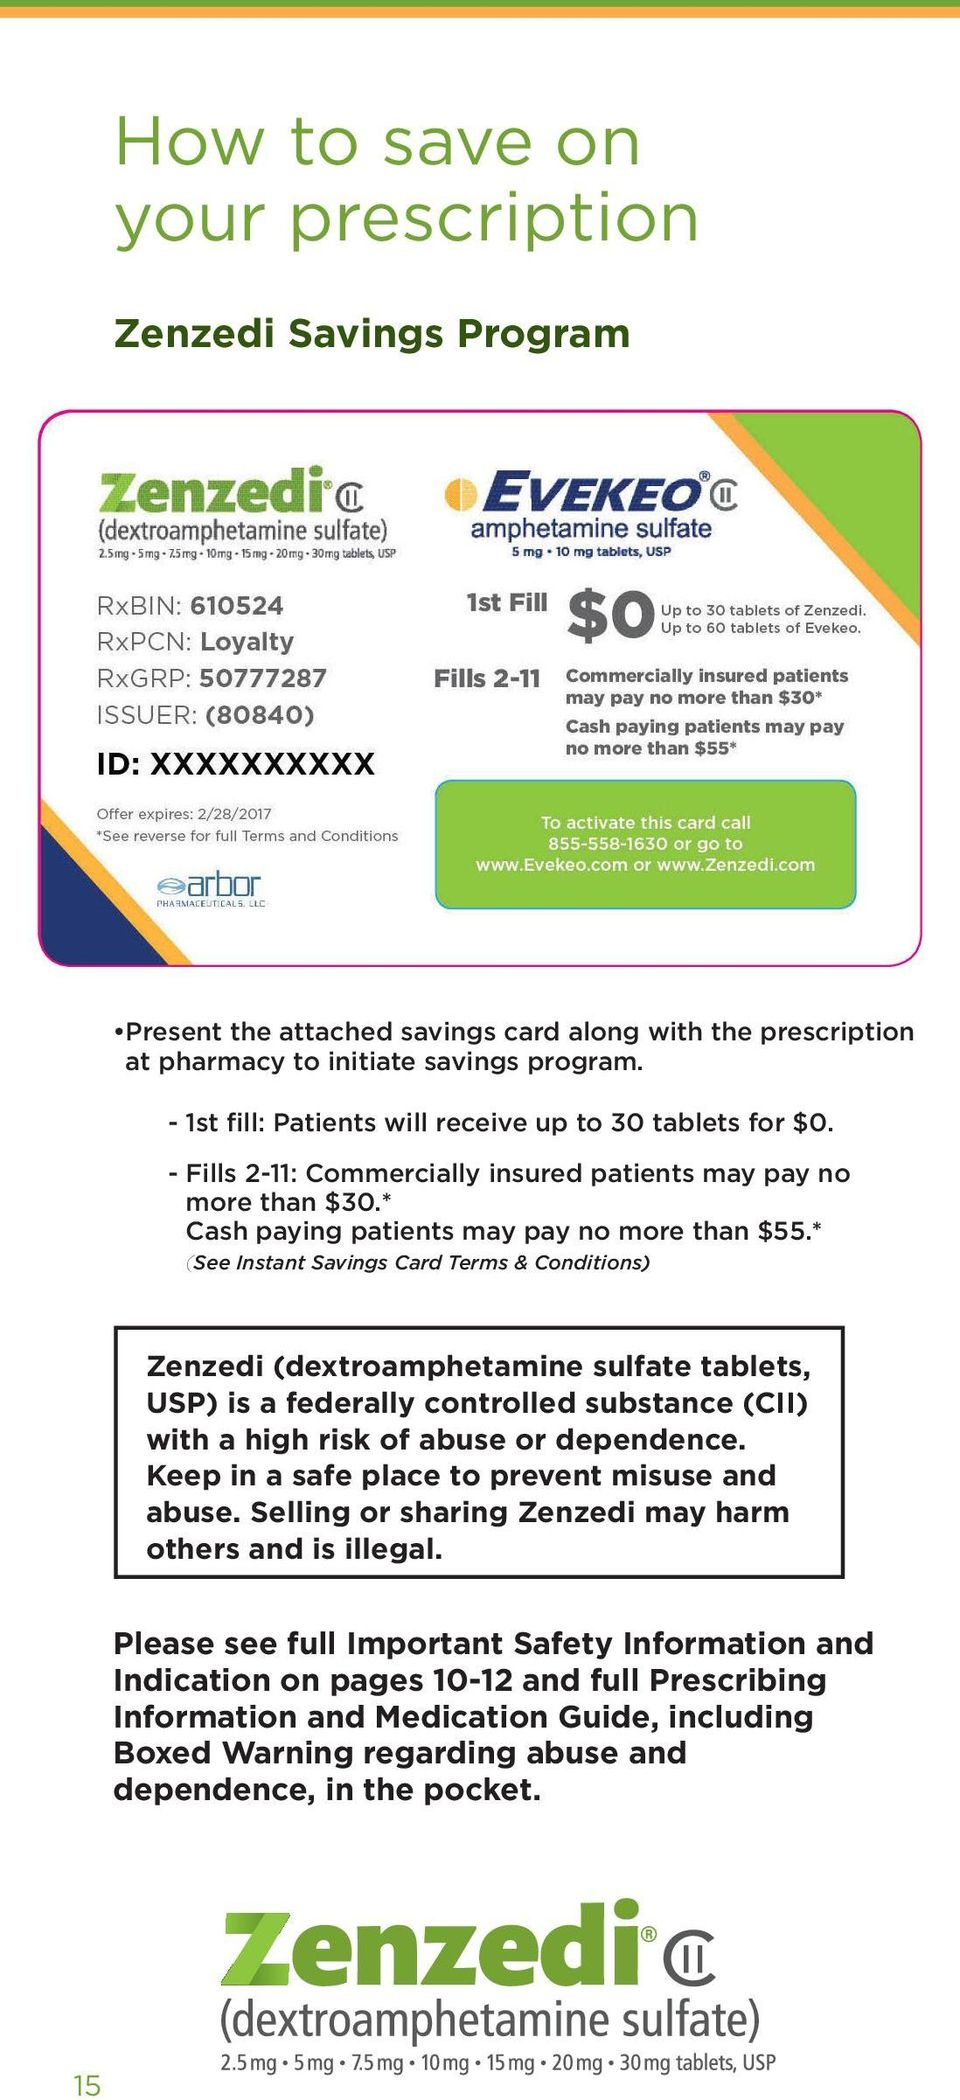 * (See Instant Savings Card Terms & Conditions) Zenzedi (dextroamphetamine sulfate tablets, USP) is a federally controlled substance (CII) with a high risk of abuse or dependence.